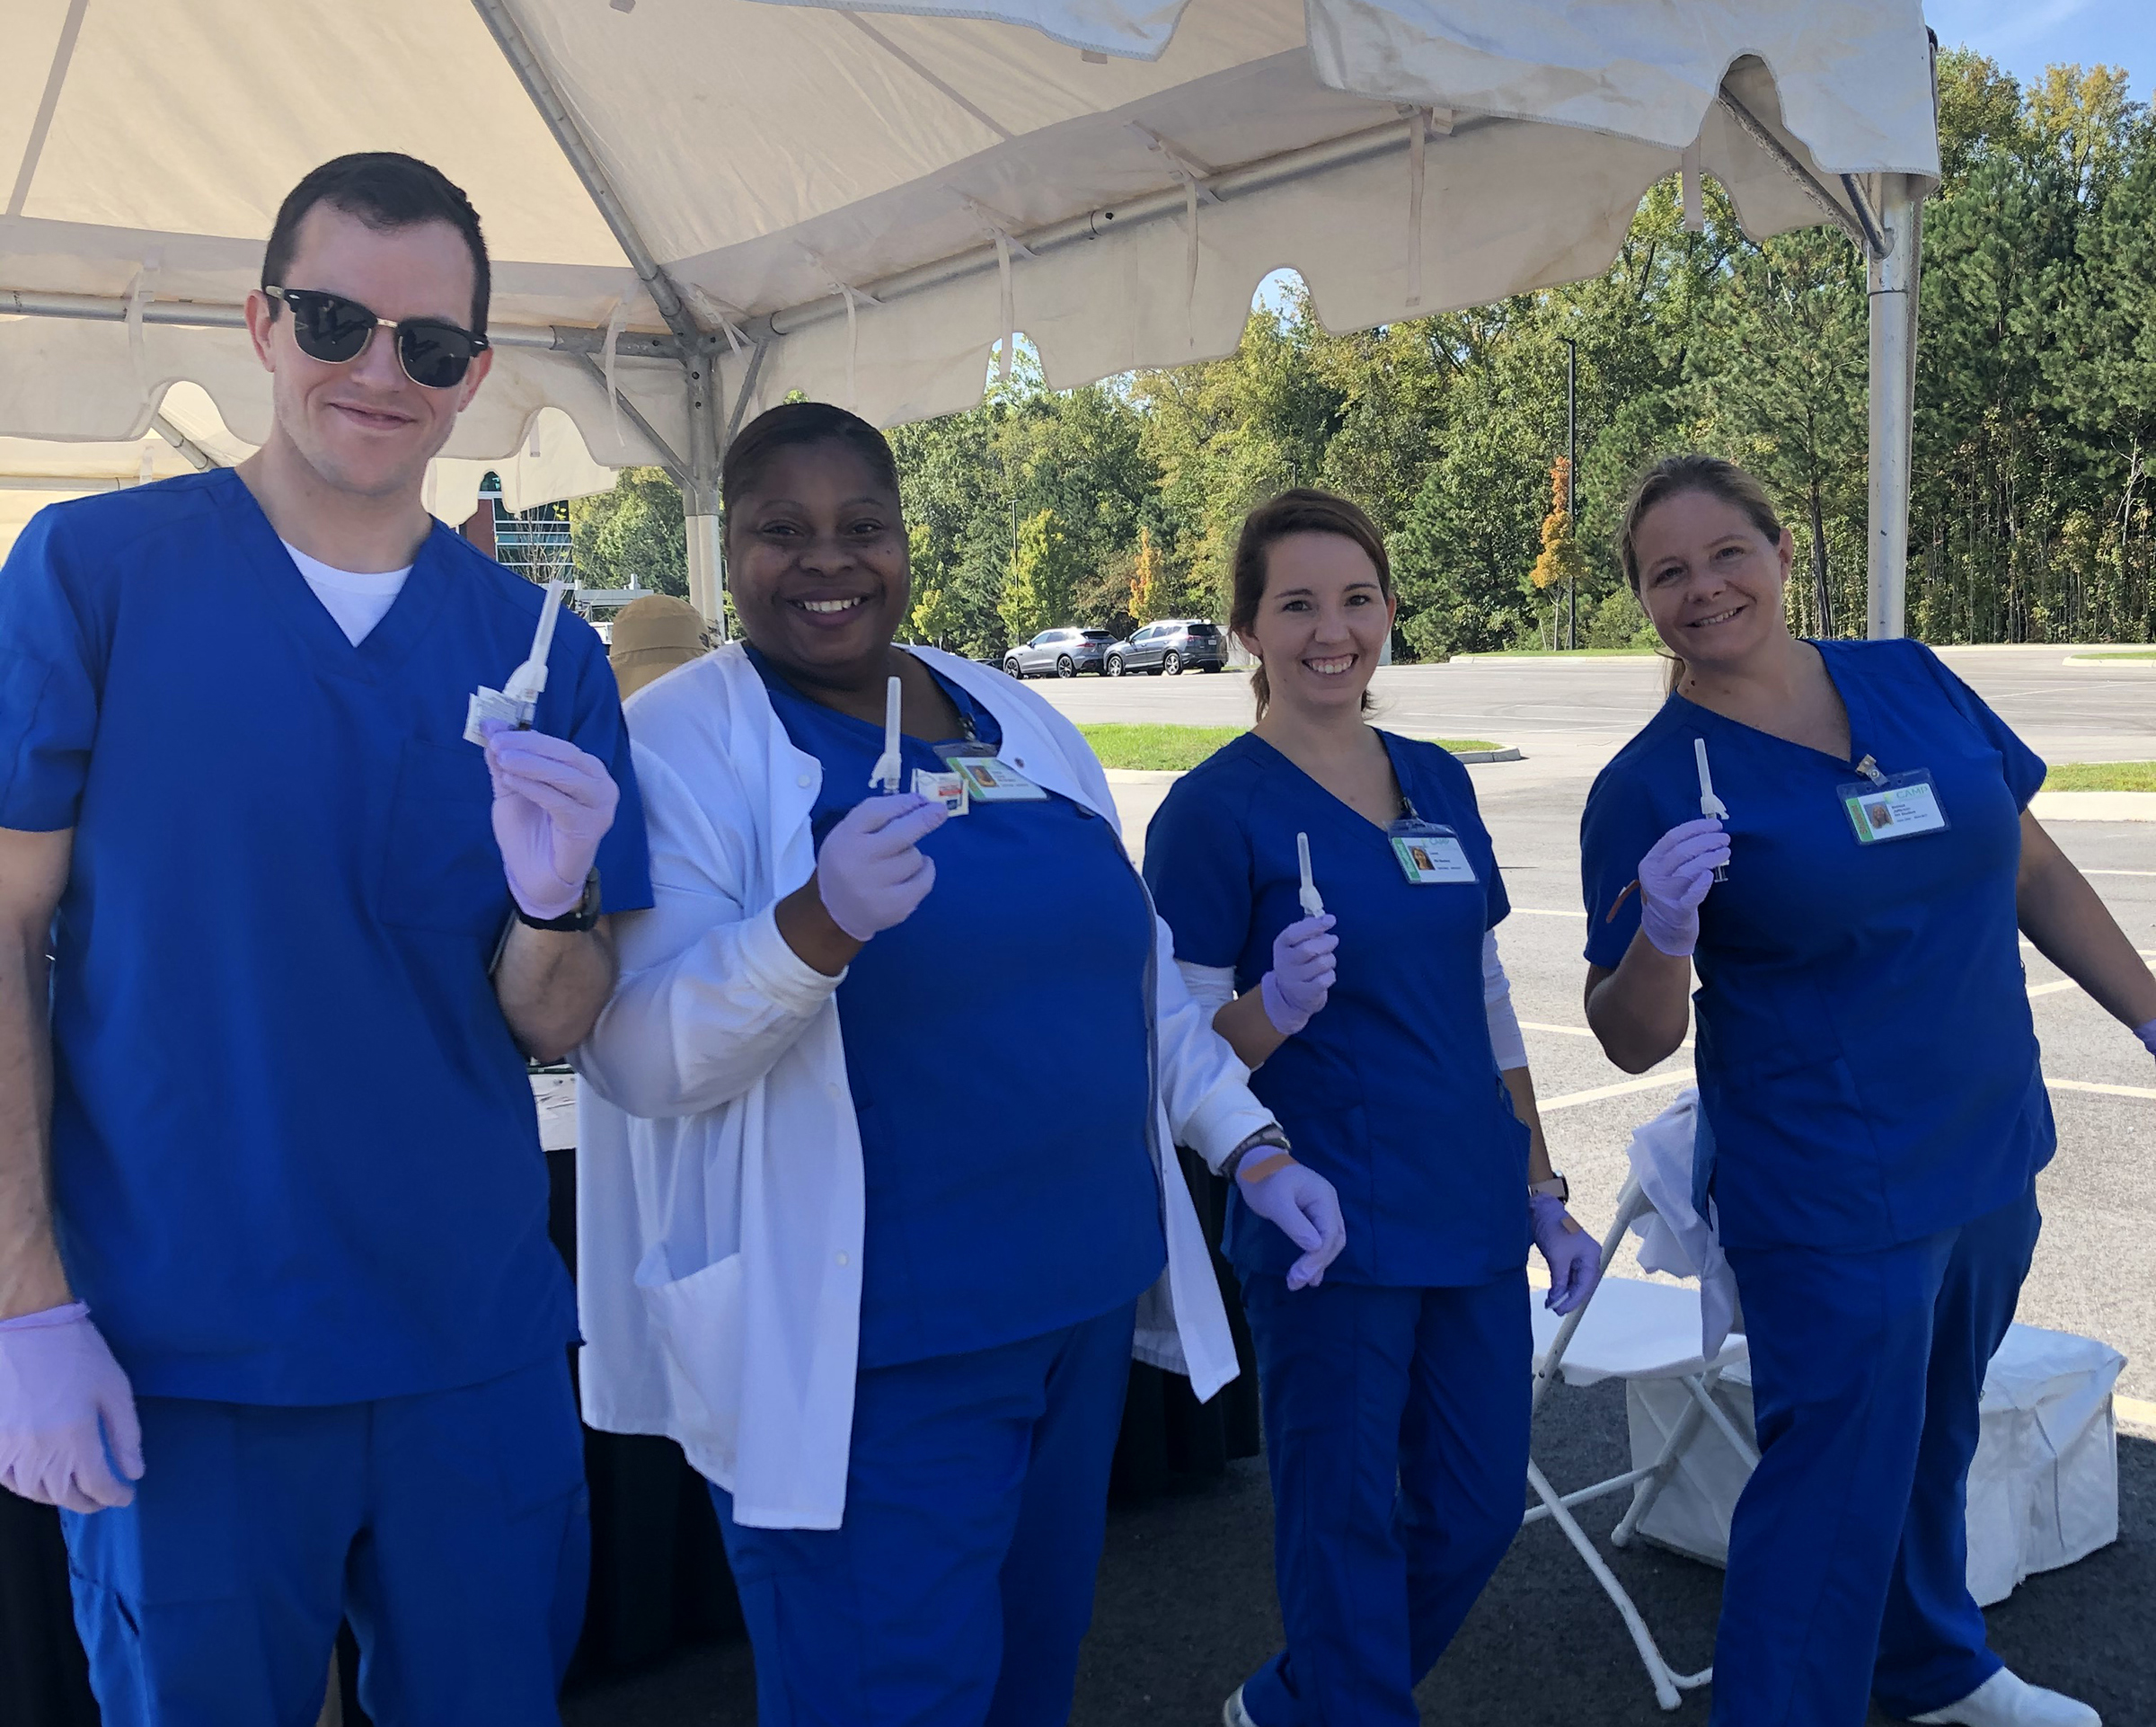 Camp seeks vendors for Professional Healthcare Career Fair